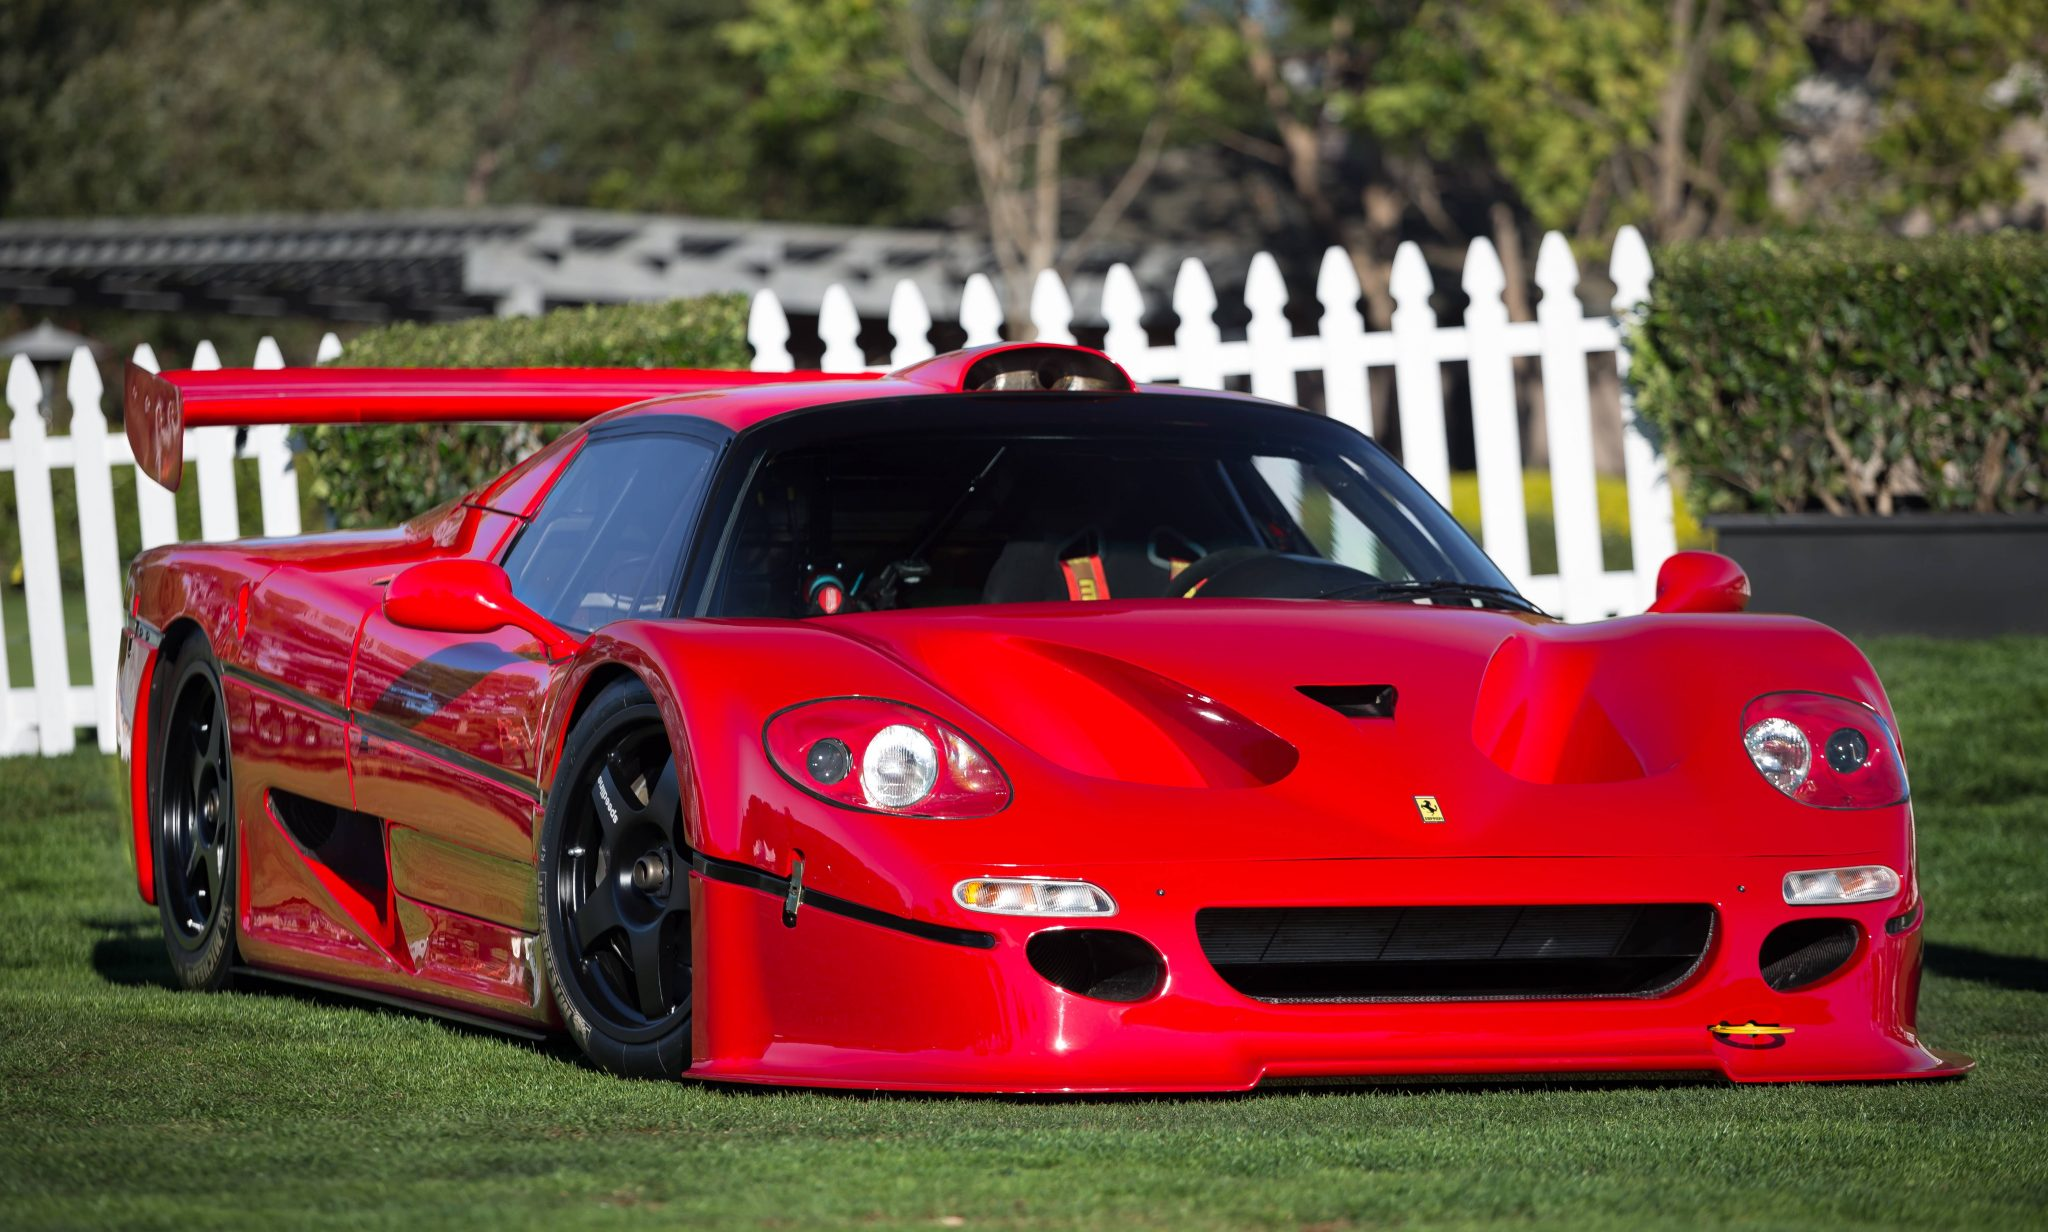 supercars bugatti with 1996 Ferrari F50 Gt on Mercedes Benz Sls Amg Supercar Wallpaper additionally Rich b0y88s Mugen Acura Rsx furthermore Wmrl6m2 in addition Wp7pdmy moreover Histoire Logo Ferrari.